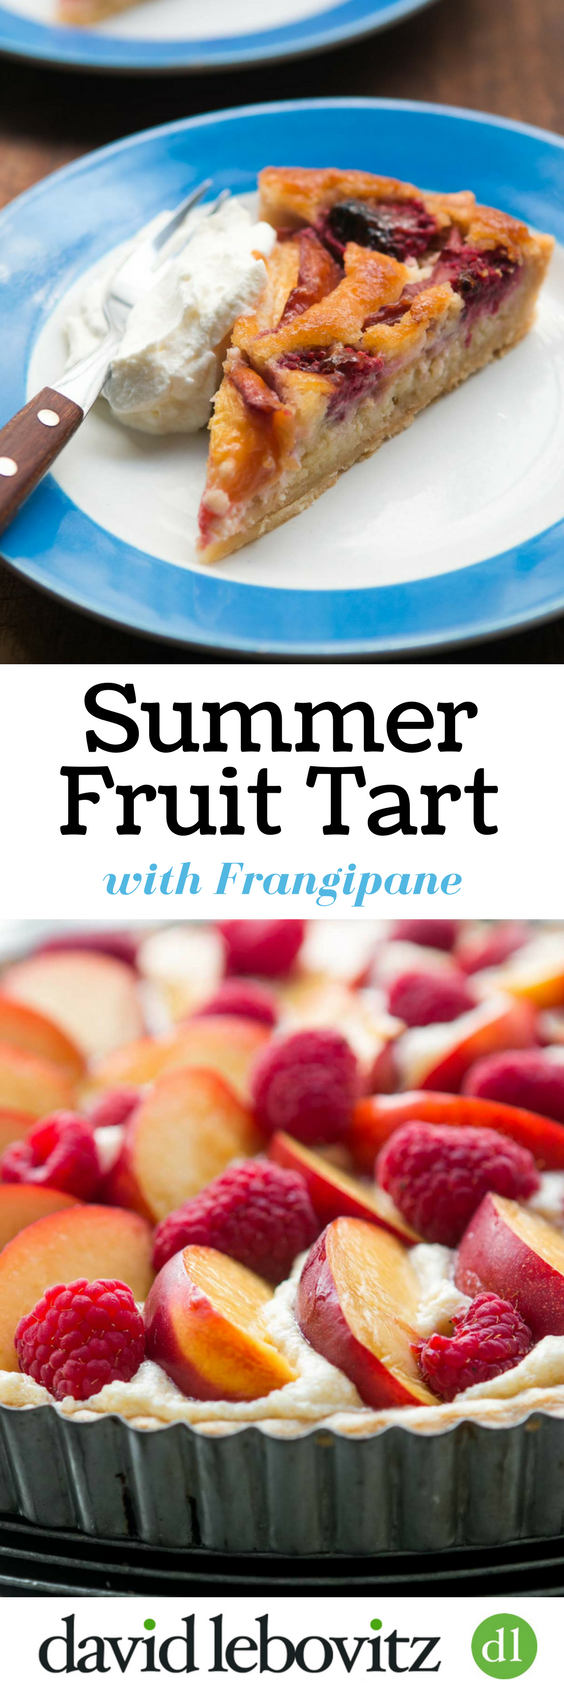 A simple summer fruit tart recipe, with a base of almond cream and ripe fruit on top. Keeps well and is sure to become one of your favorite desserts!